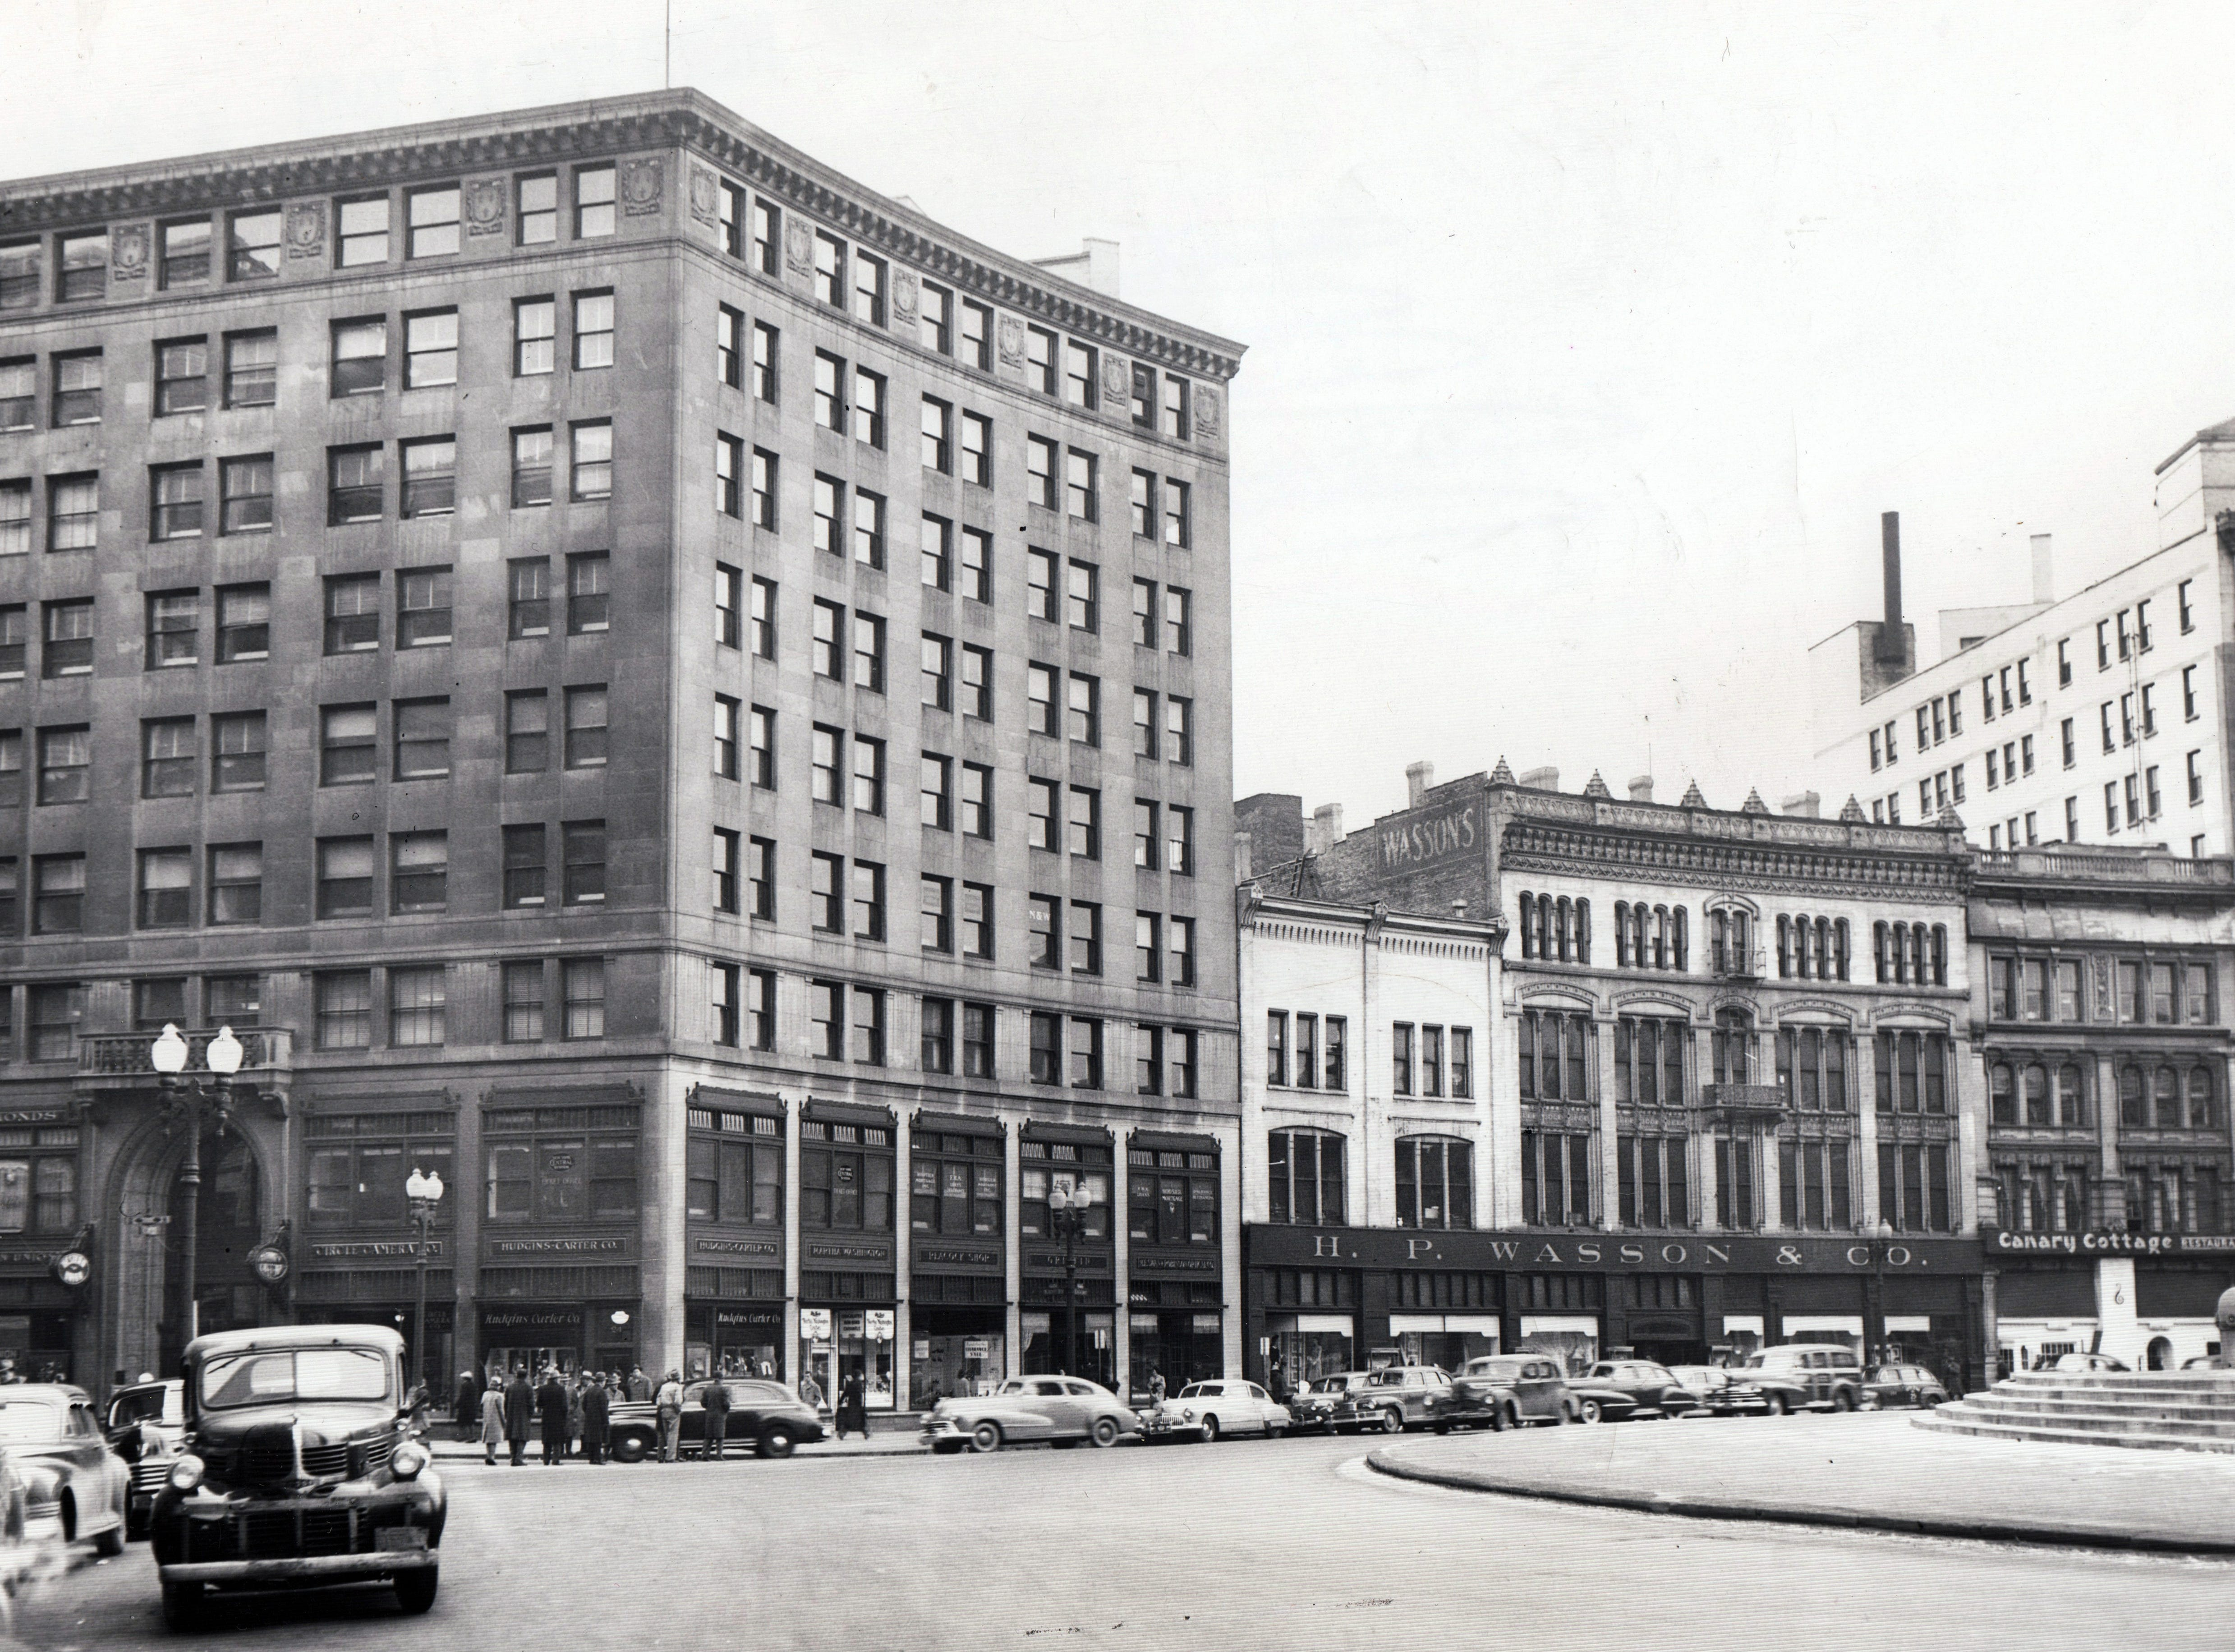 The southwest segment of Monument Circle, February 13, 1948. Businesses include the Circle Camera Co., the Hudgins Carter Co., the Peacock Shop, a New York Central Railroad ticket office on the second floor,  H.P. Wasson & Co., the Canary Cottage Restaurant.